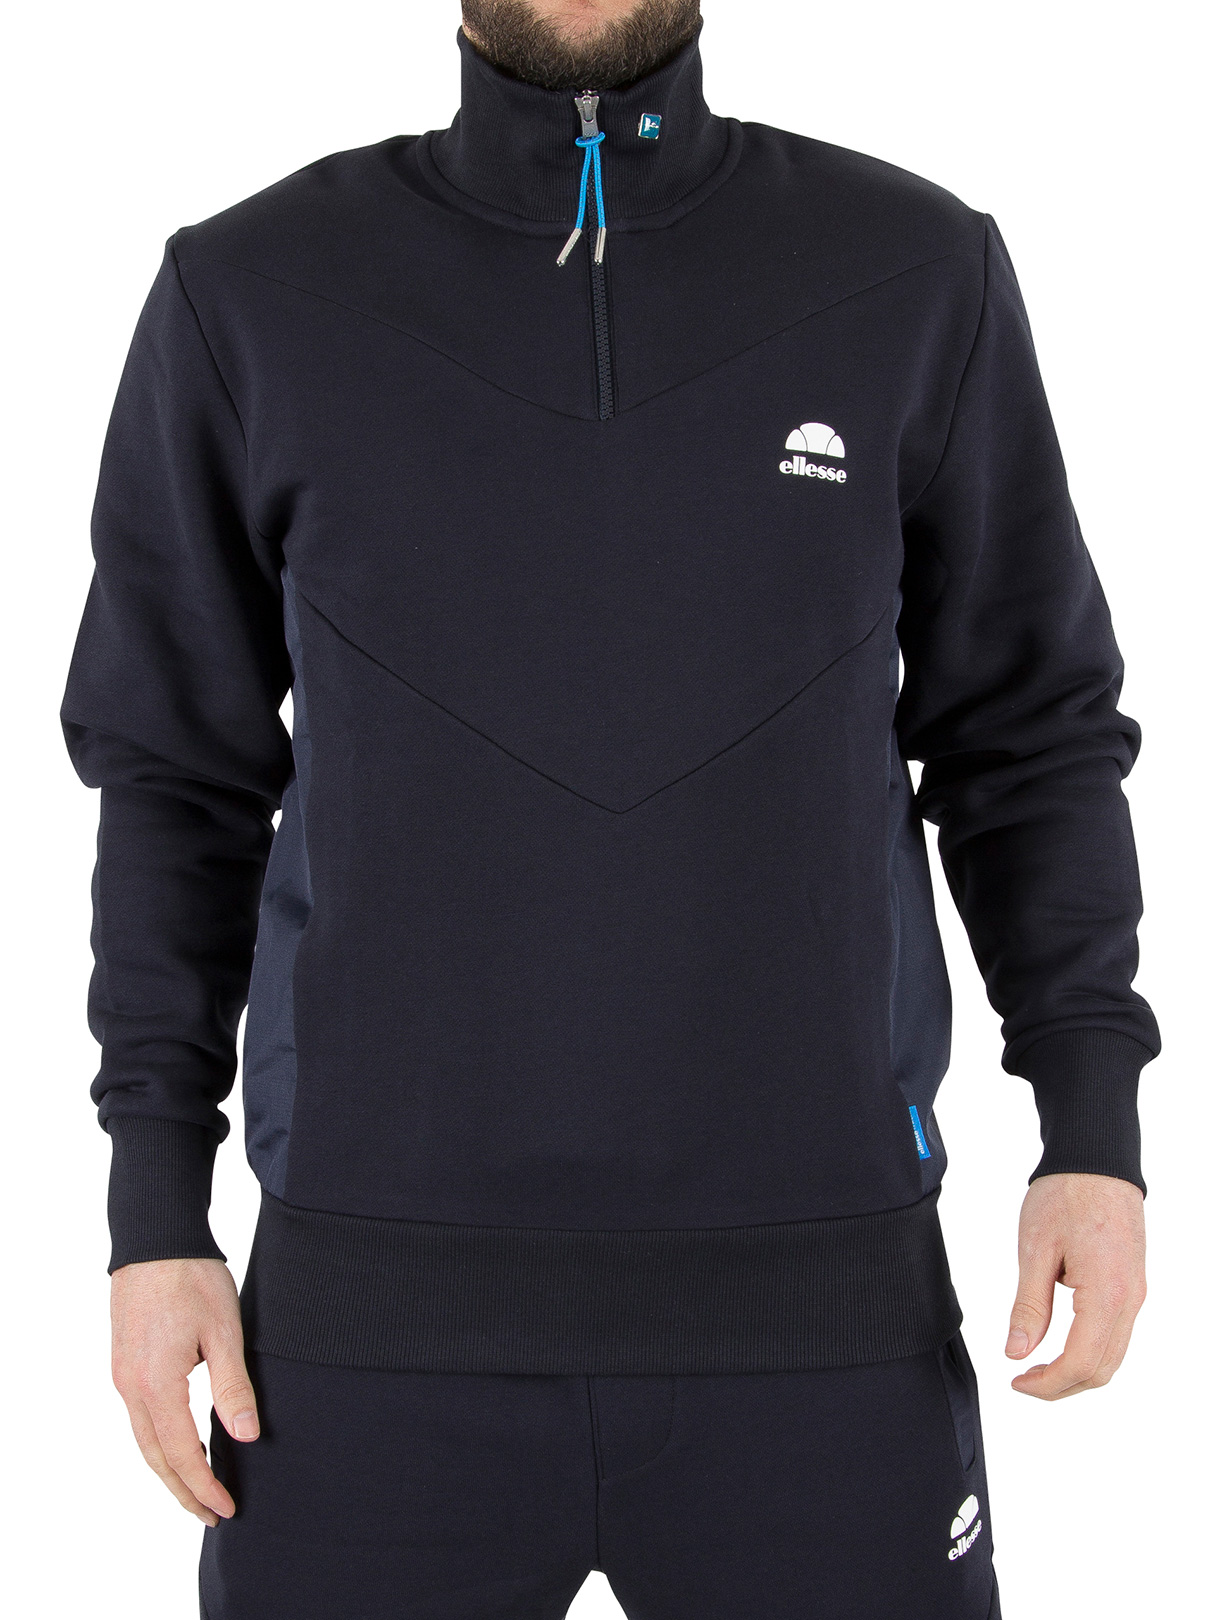 ellesse herren bertini funnel zip sweatshirt blau ebay. Black Bedroom Furniture Sets. Home Design Ideas